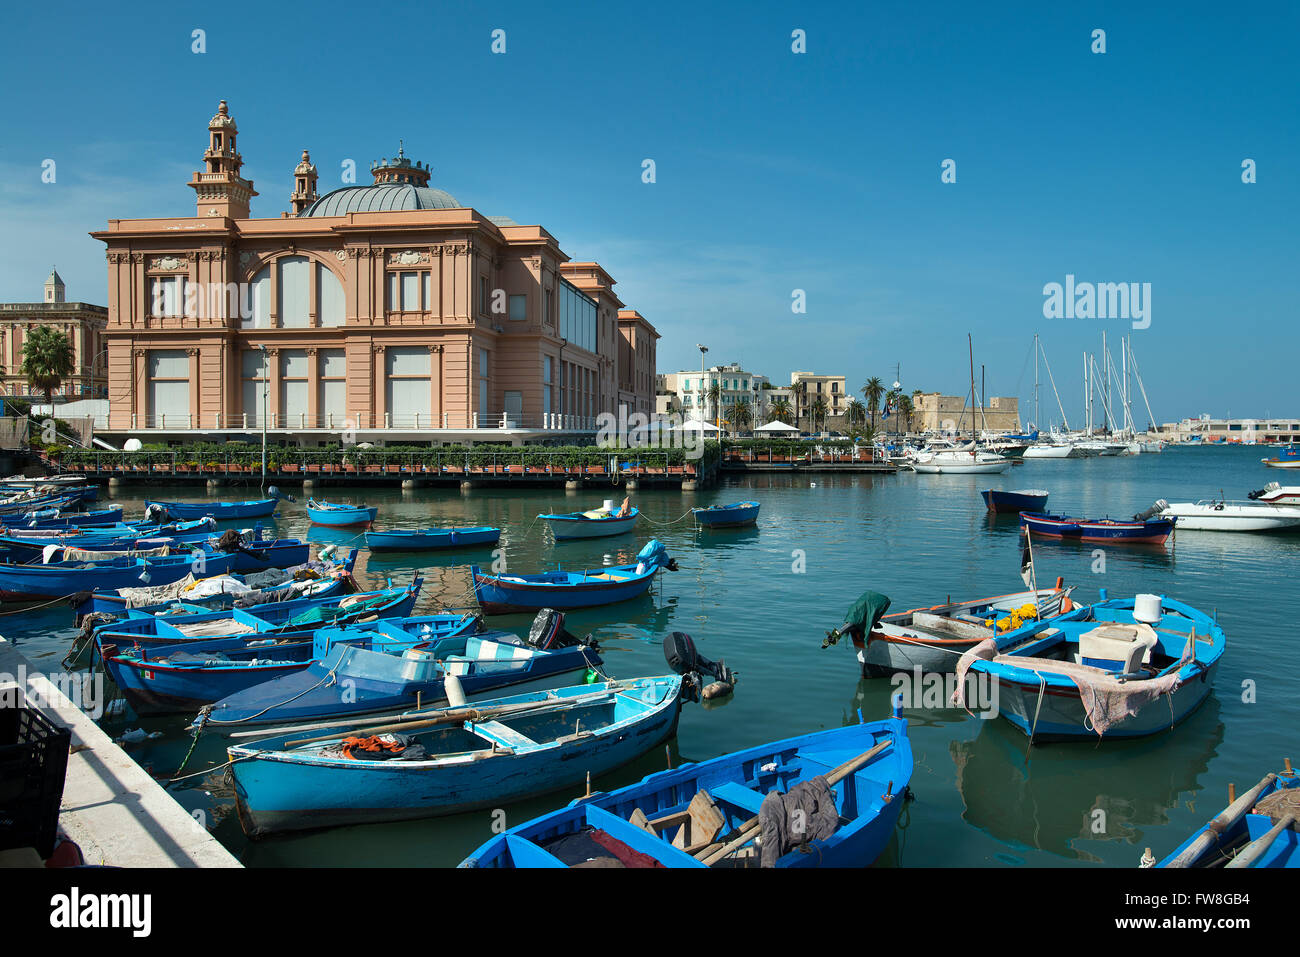 Fishing boats in Harbour, Bari, Italy - Stock Image